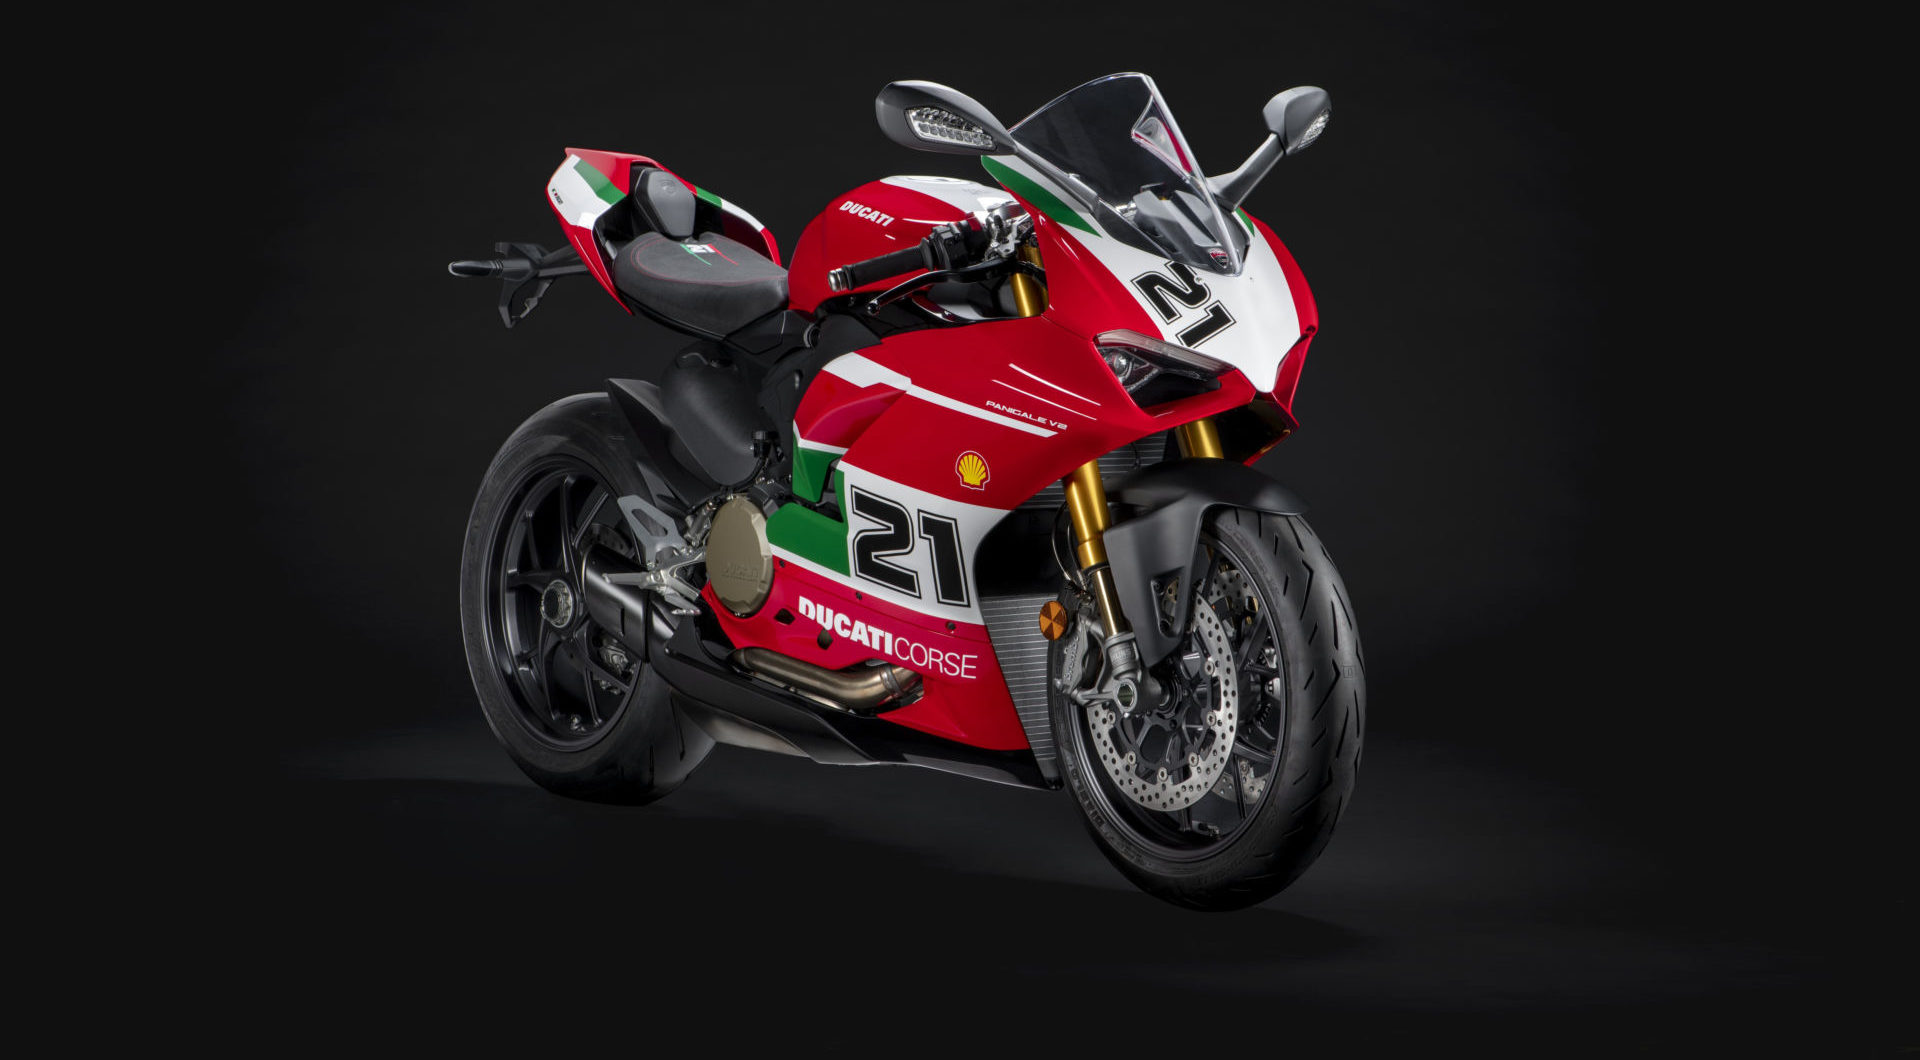 A Ducati Panigale V2 Bayliss 1st Championship 20th Anniversary edition motorcycle. Photo courtesy Ducati.